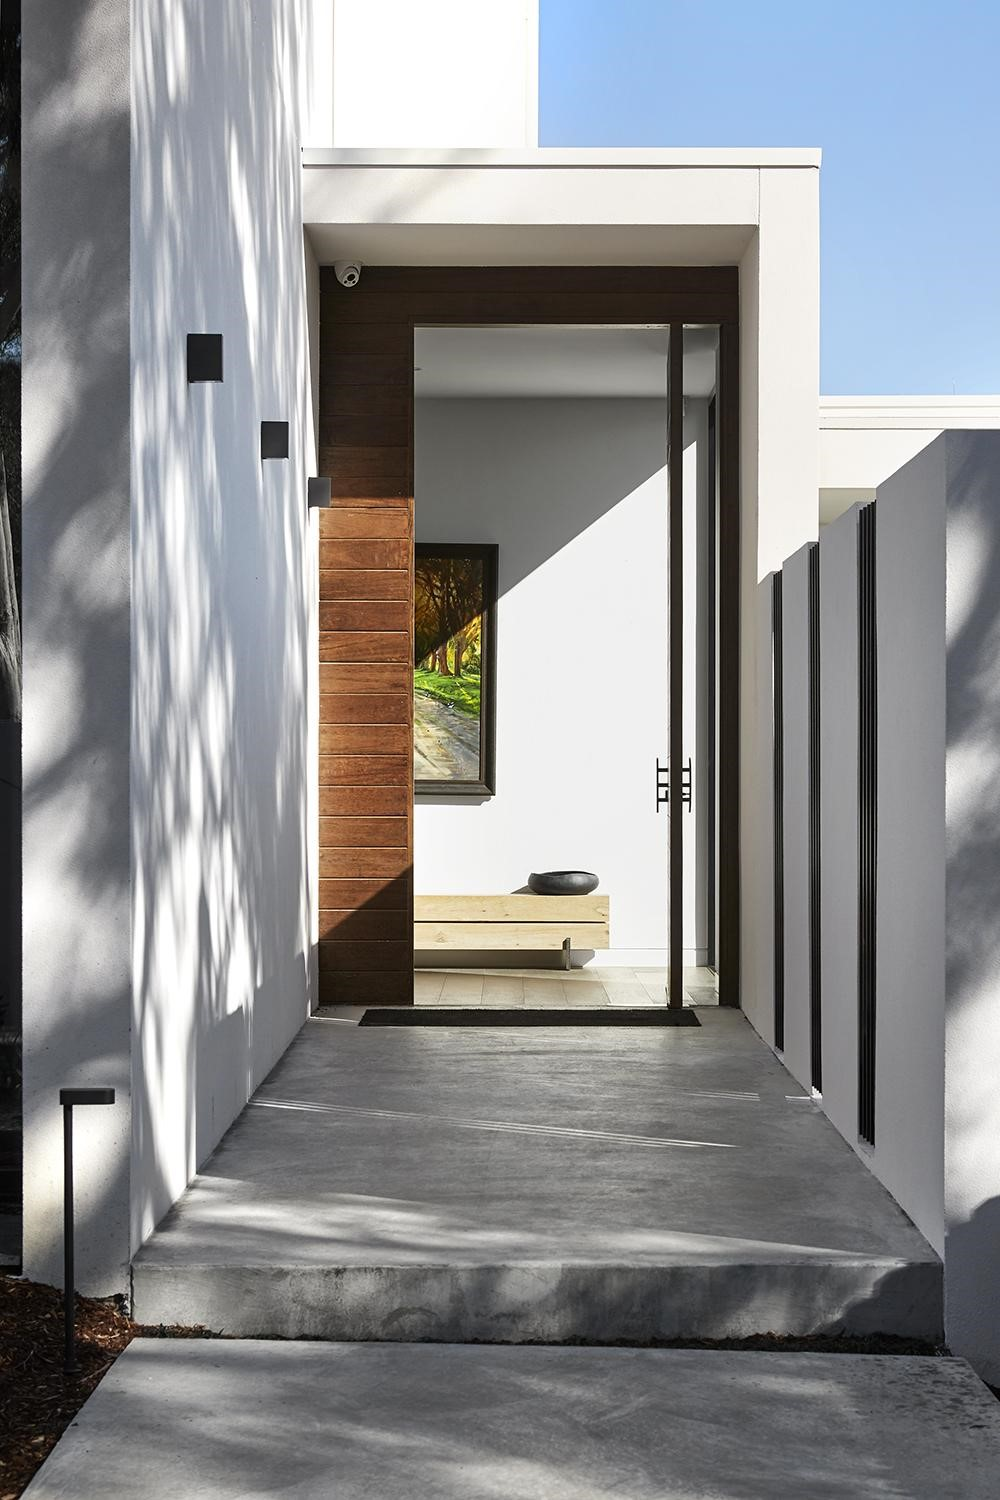 Gallery Of Jells Road By Canny Group Local Australian Design And Residential Architecture Melbourne, Vic Image 13